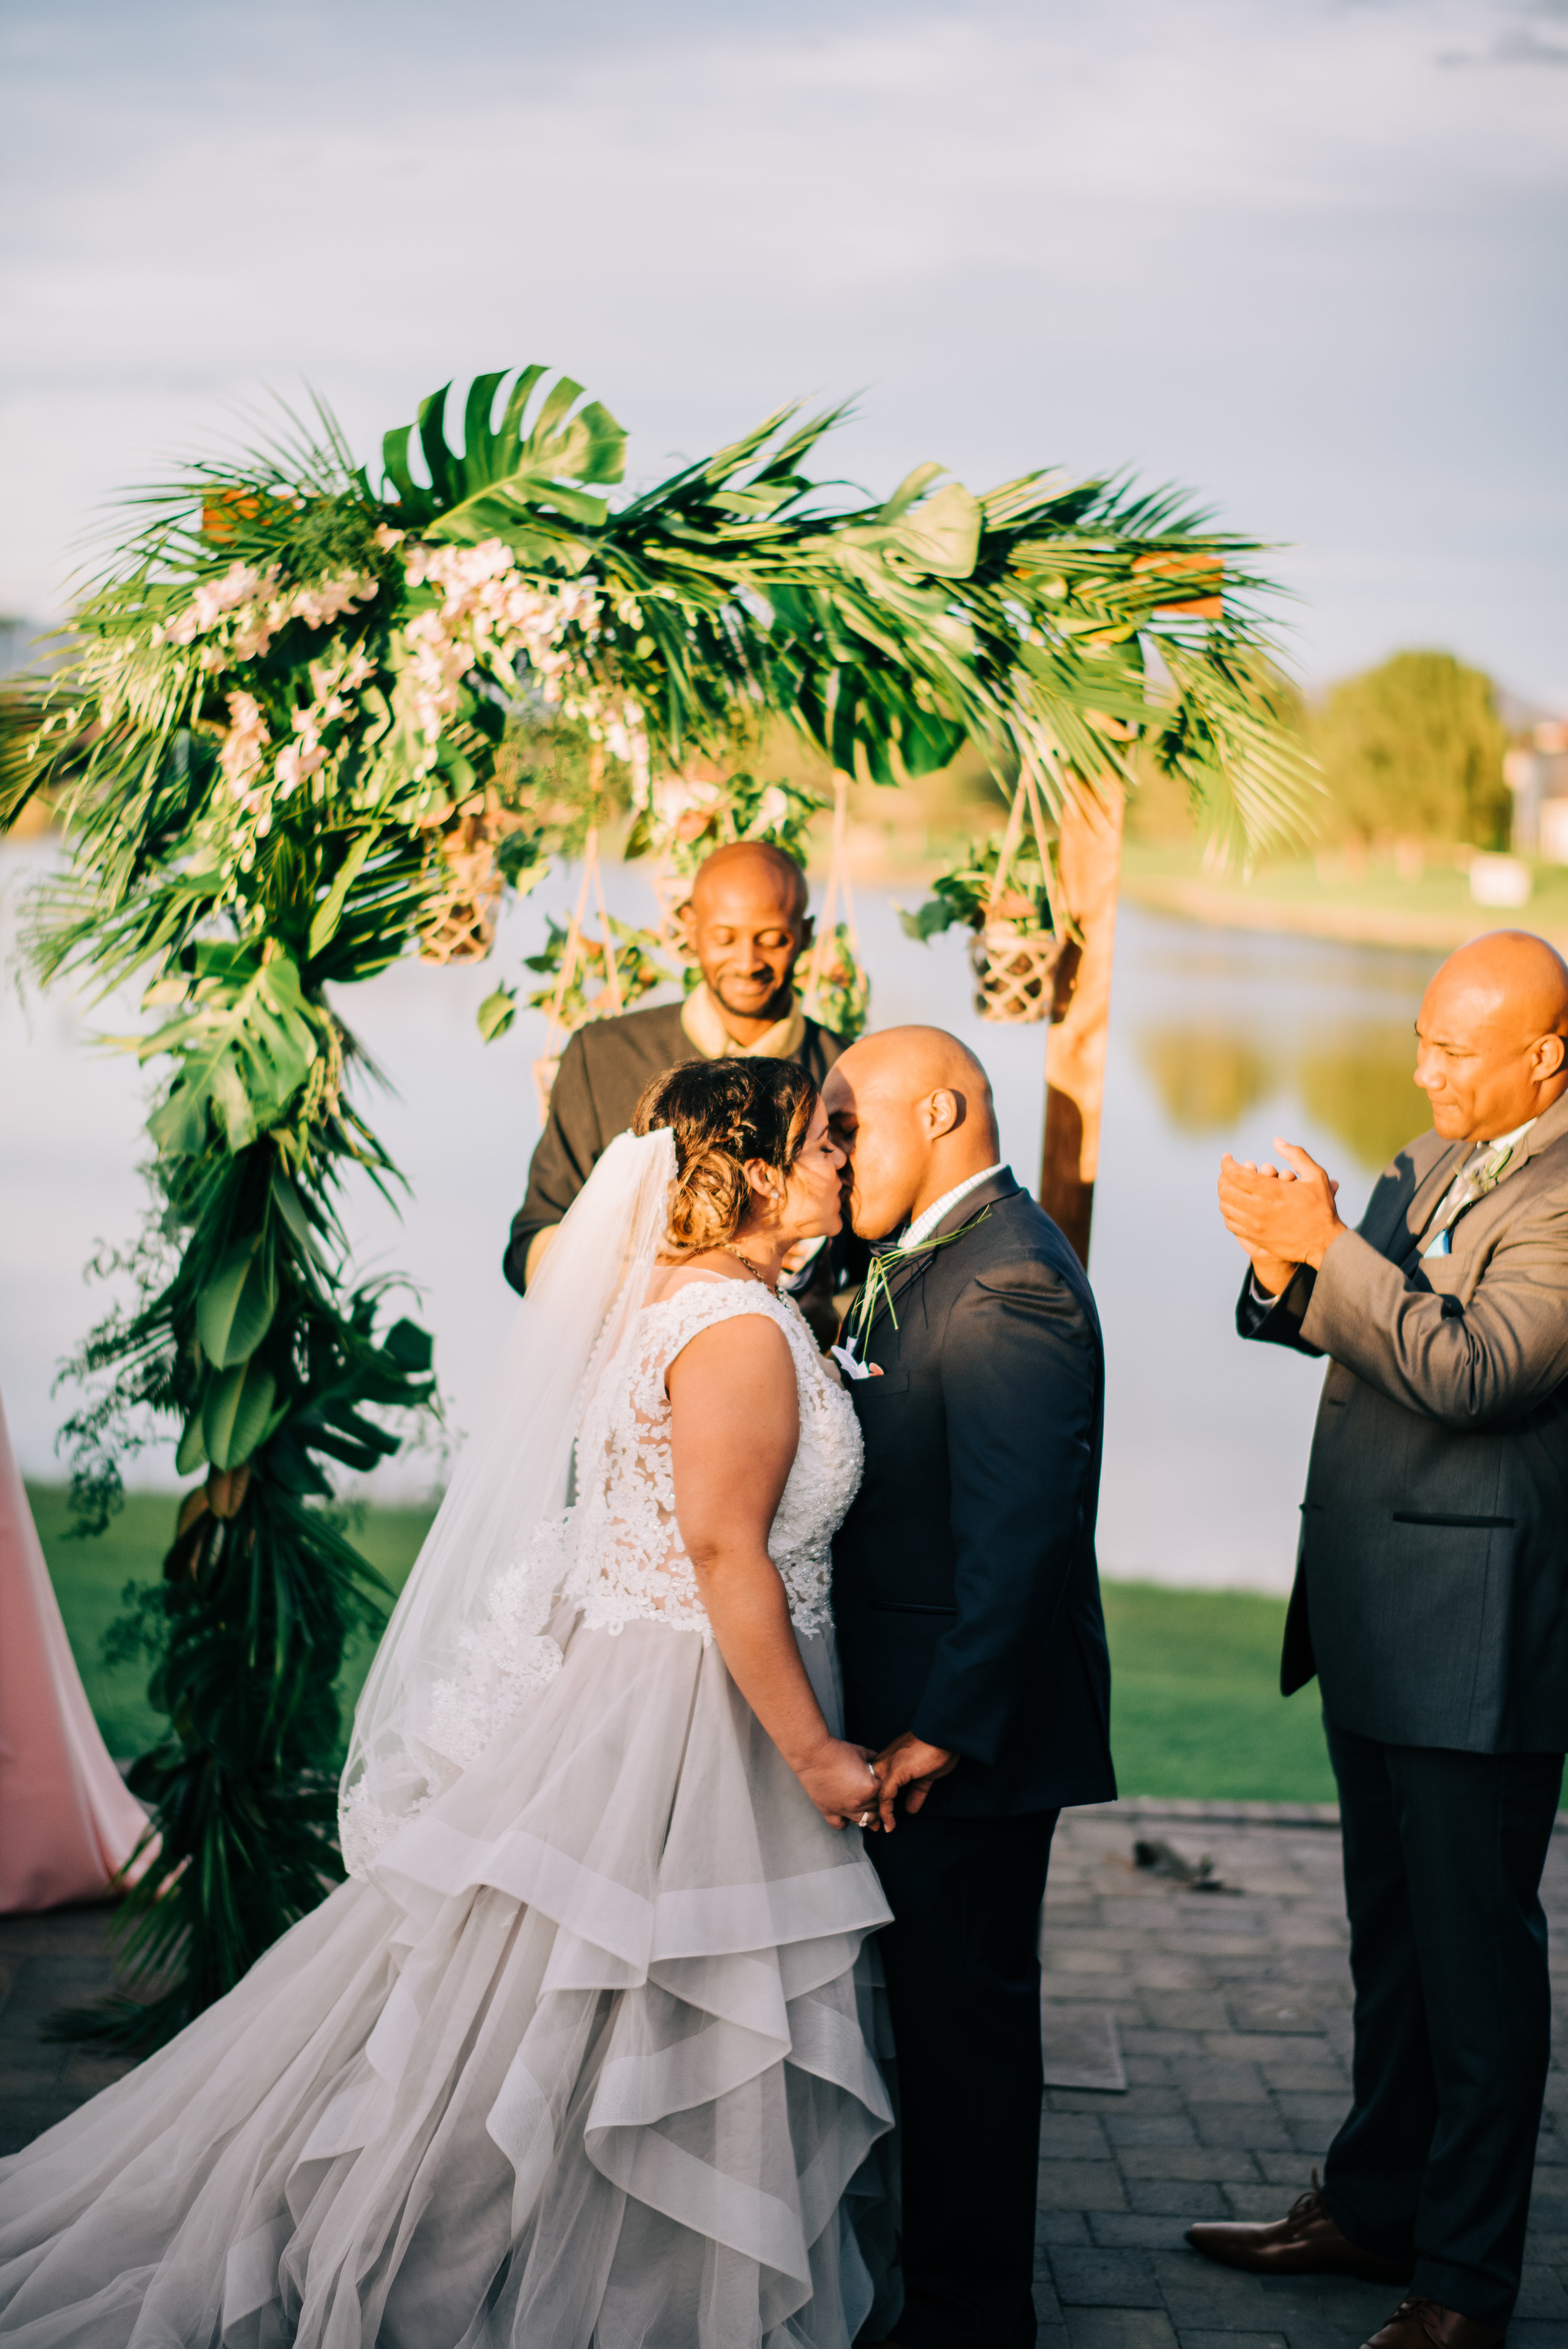 22 bride groom kiss seal the deal kiss the bride wedding ceremony Life Design Events photos by Josh Snyder Photography.jpg